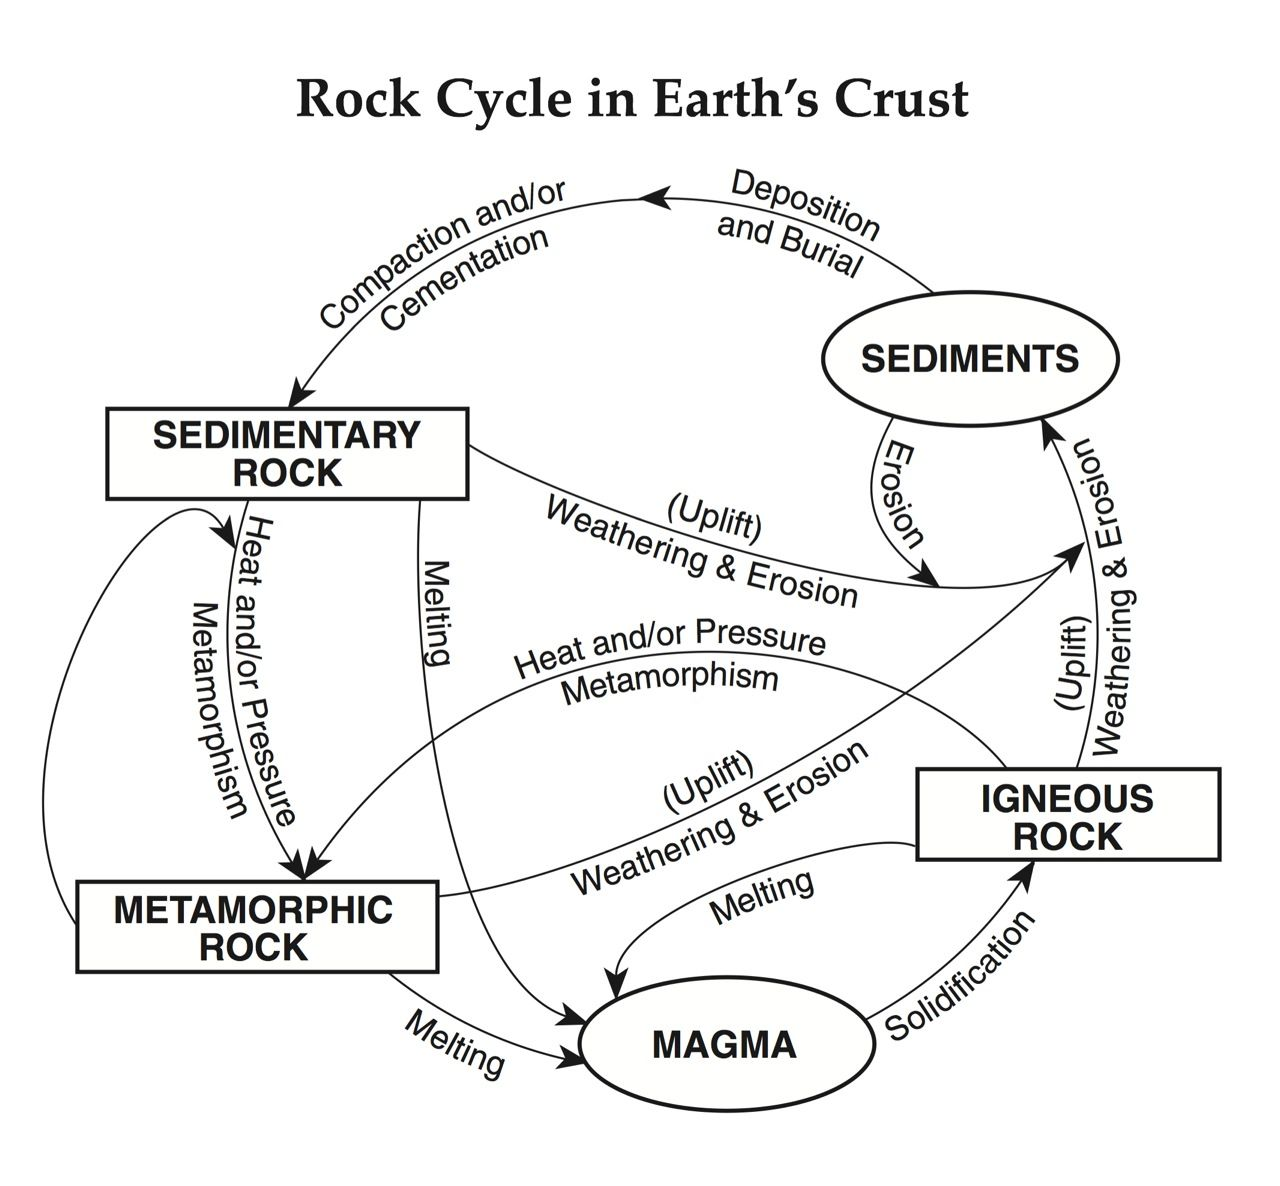 Sample Questions On Rock Cycle And Earth With Diagrams